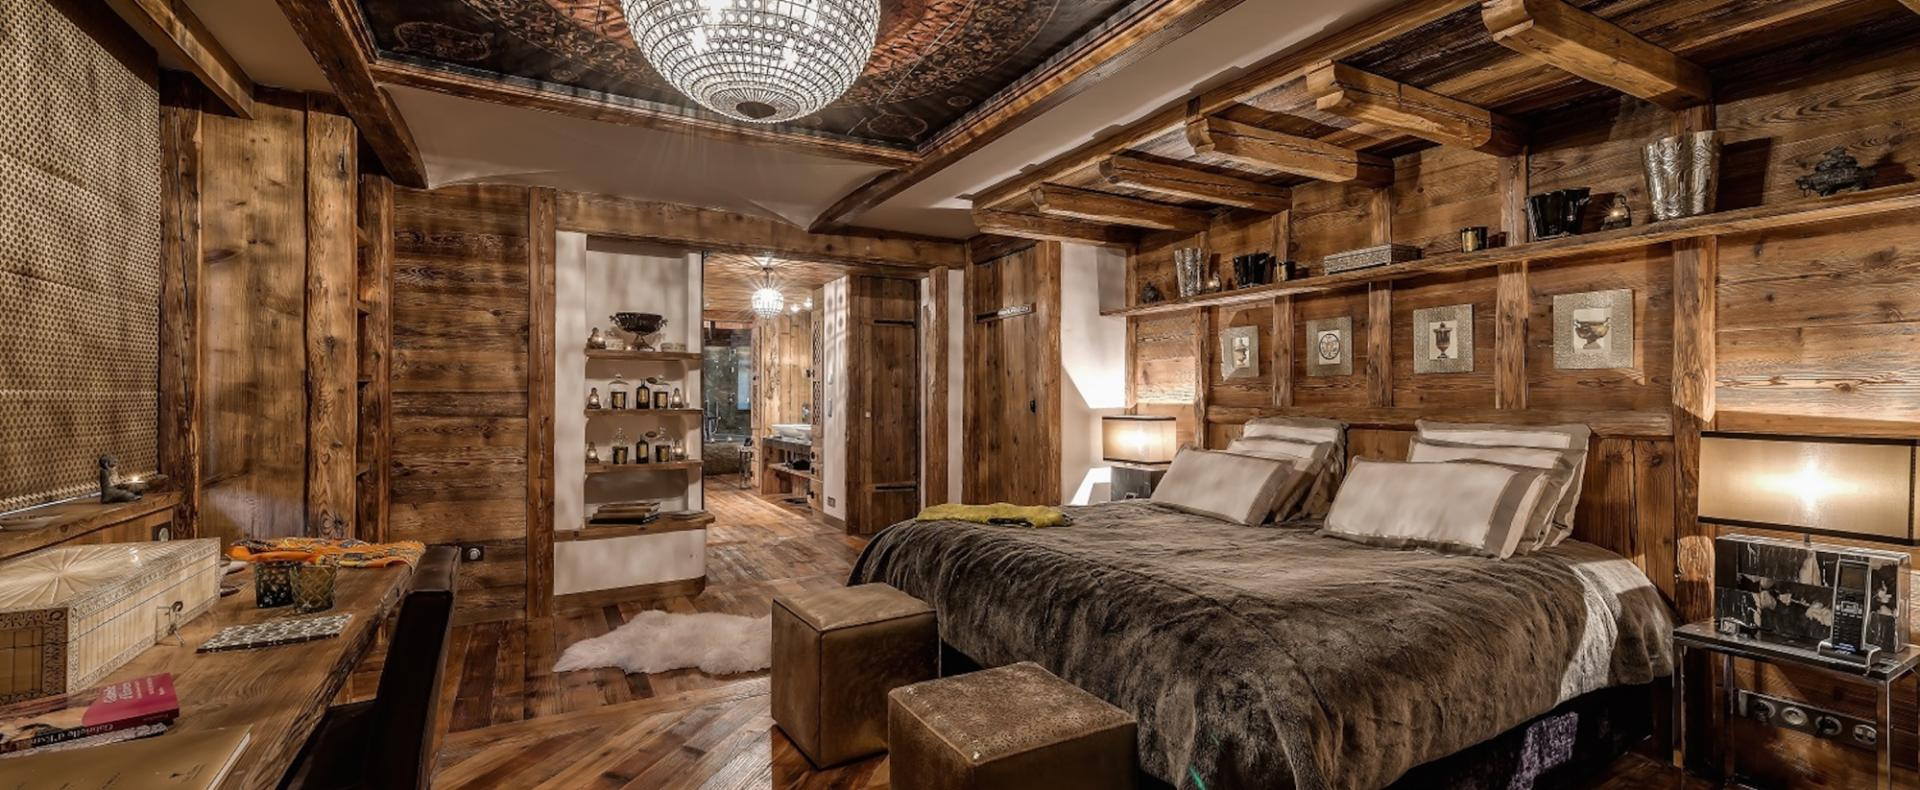 Chalet Marco Polo, Ski Val d\'Isere, France, Ultimate Luxury Chalets